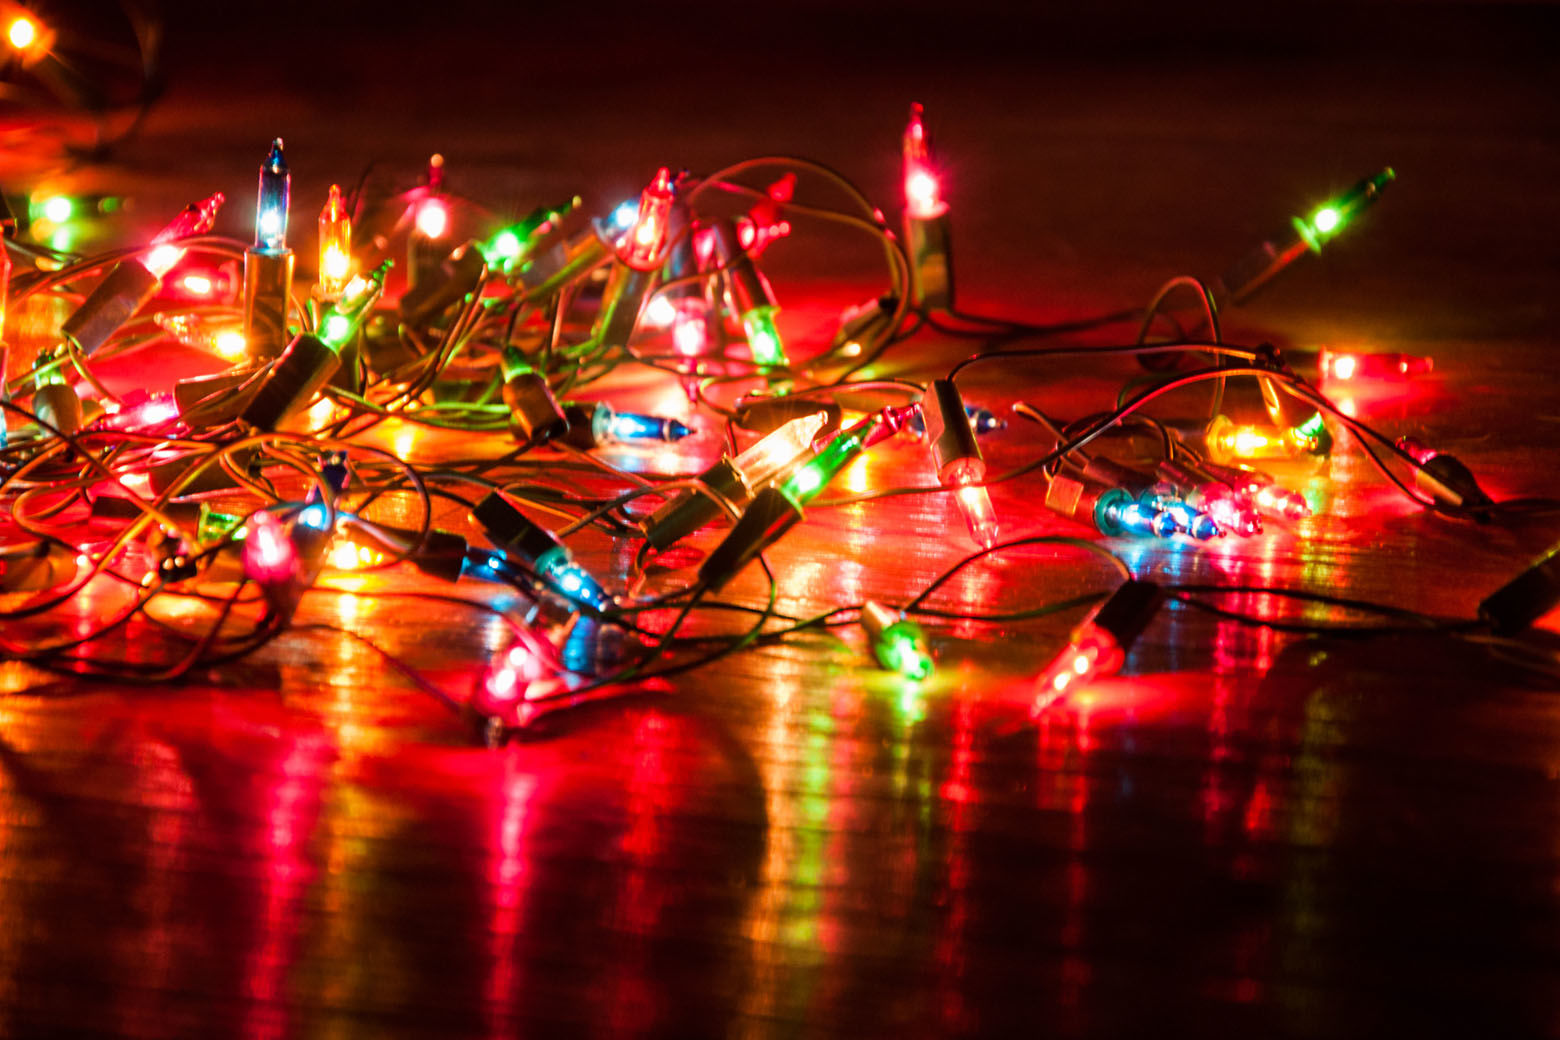 Everybody's biggest gripe about holiday decorations? Those strings of lights that mysteriously tangle themselves between seasons. (Thinkstock)